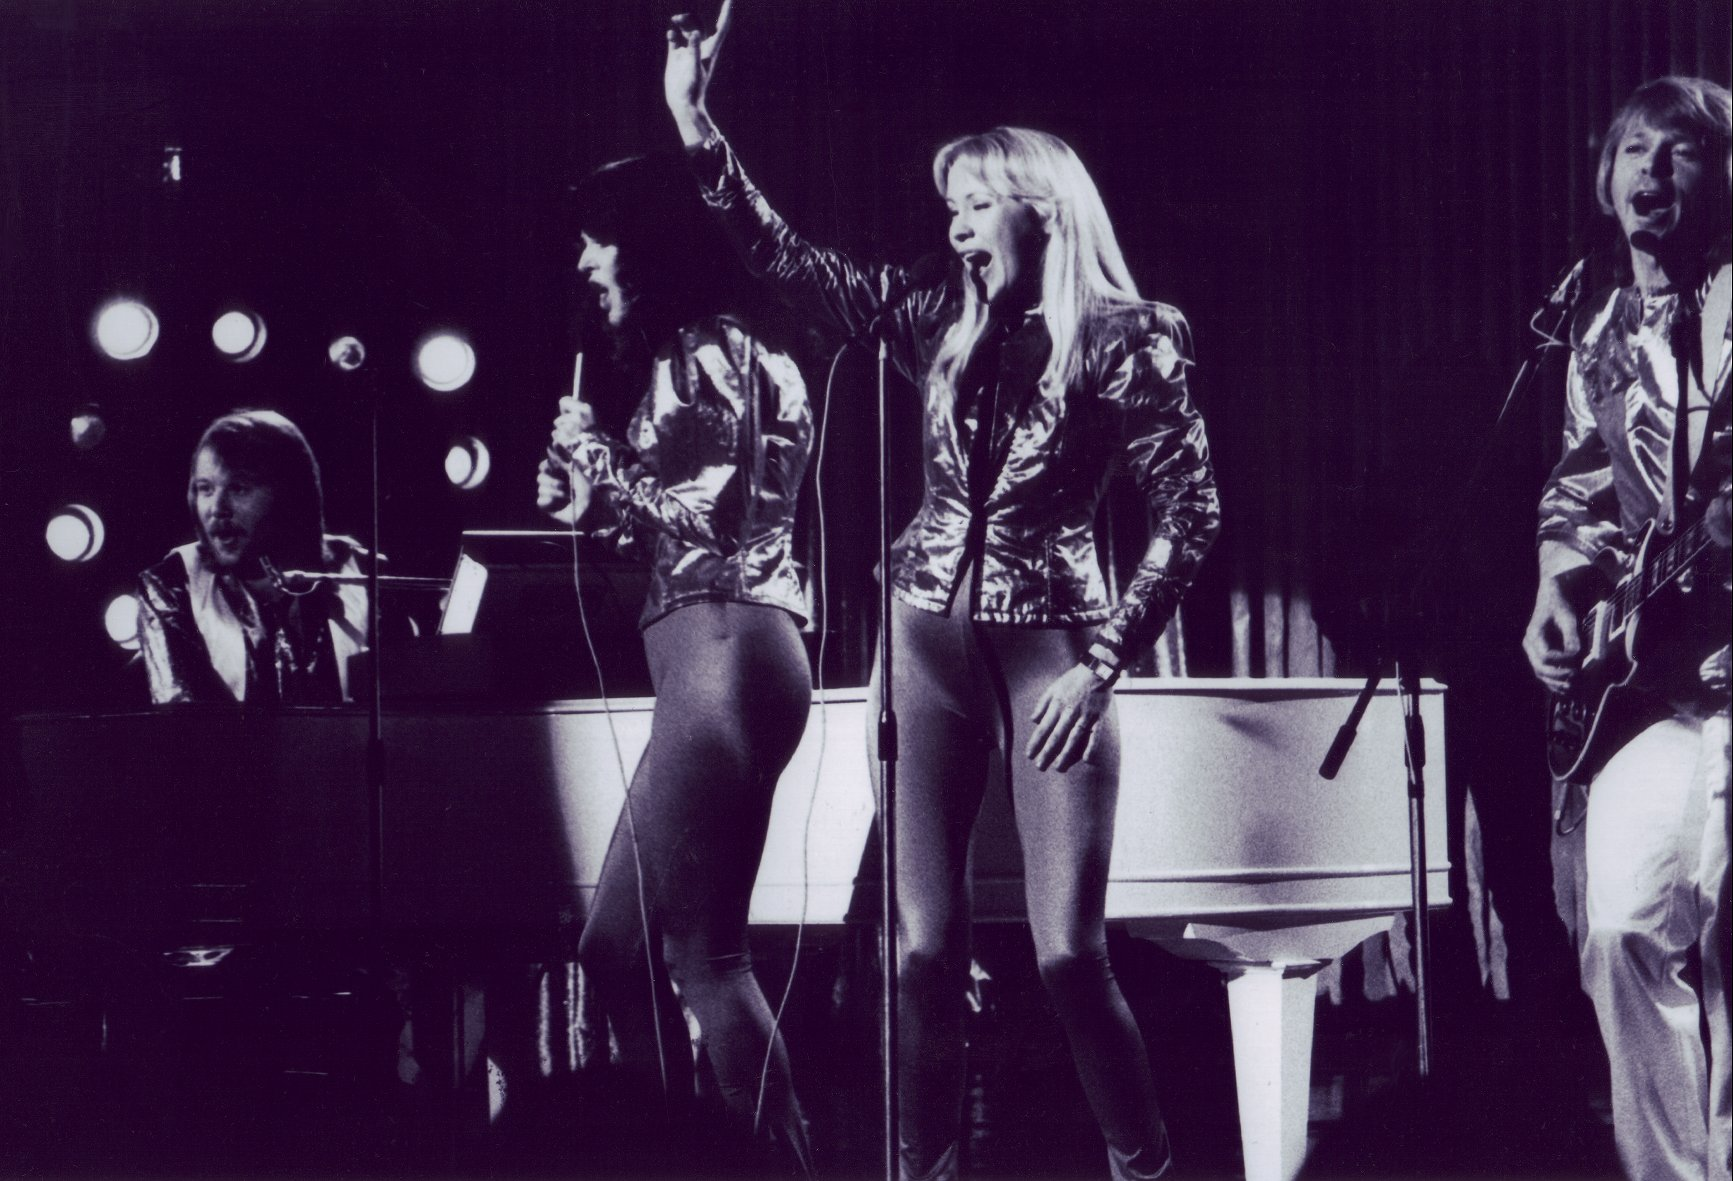 abba_on_stage_bw